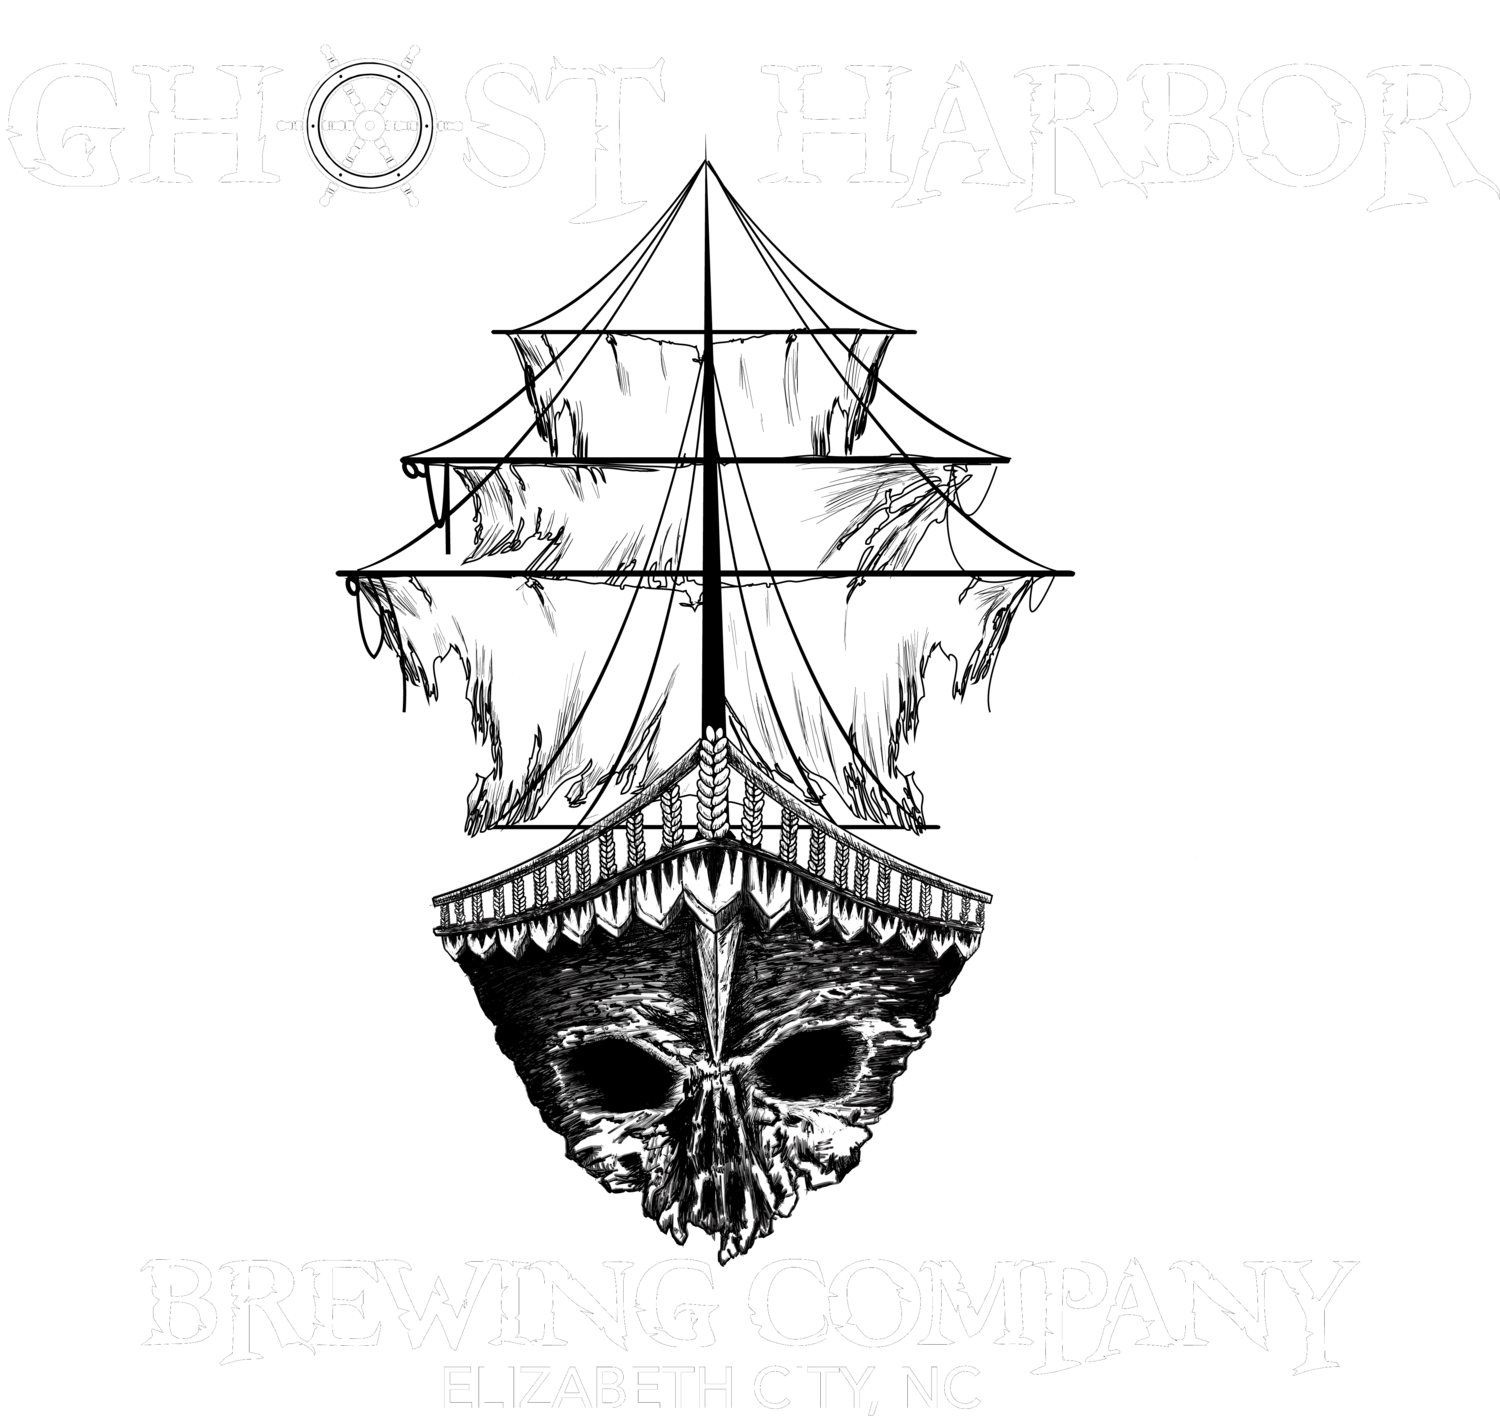 Ghost Harbor Brewing Company